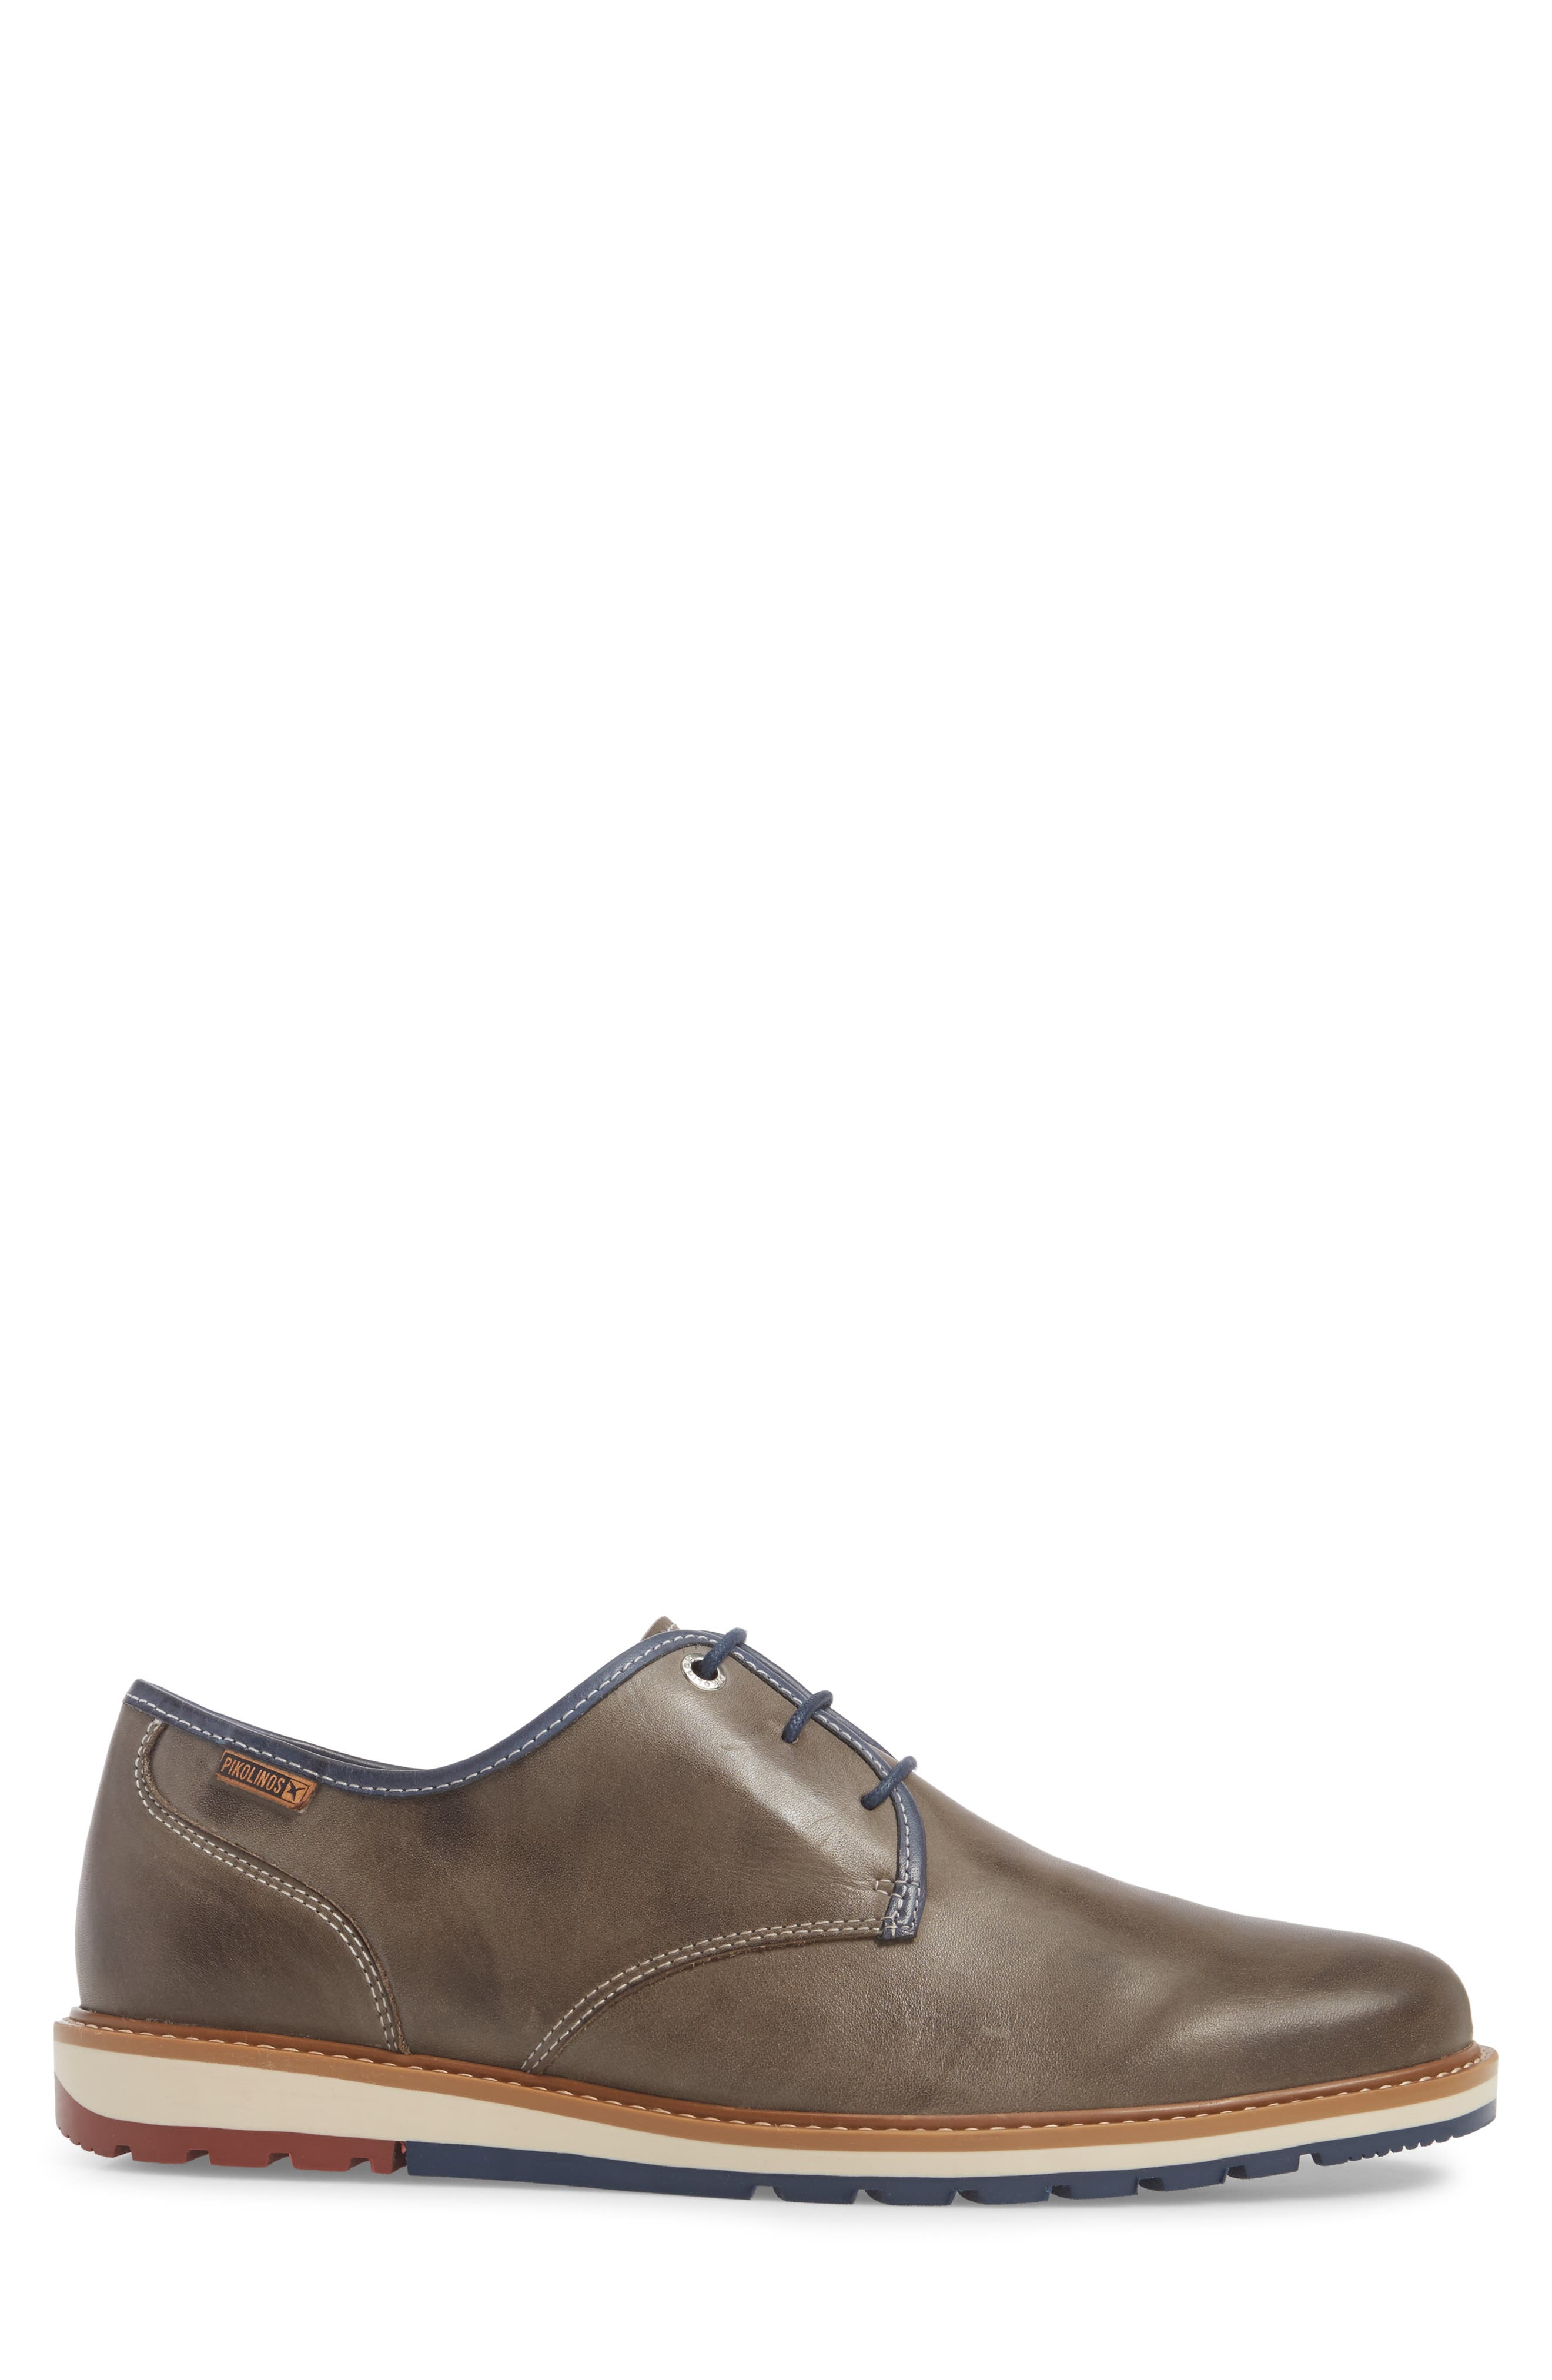 Berna Plain Toe Oxford,                             Alternate thumbnail 3, color,                             020